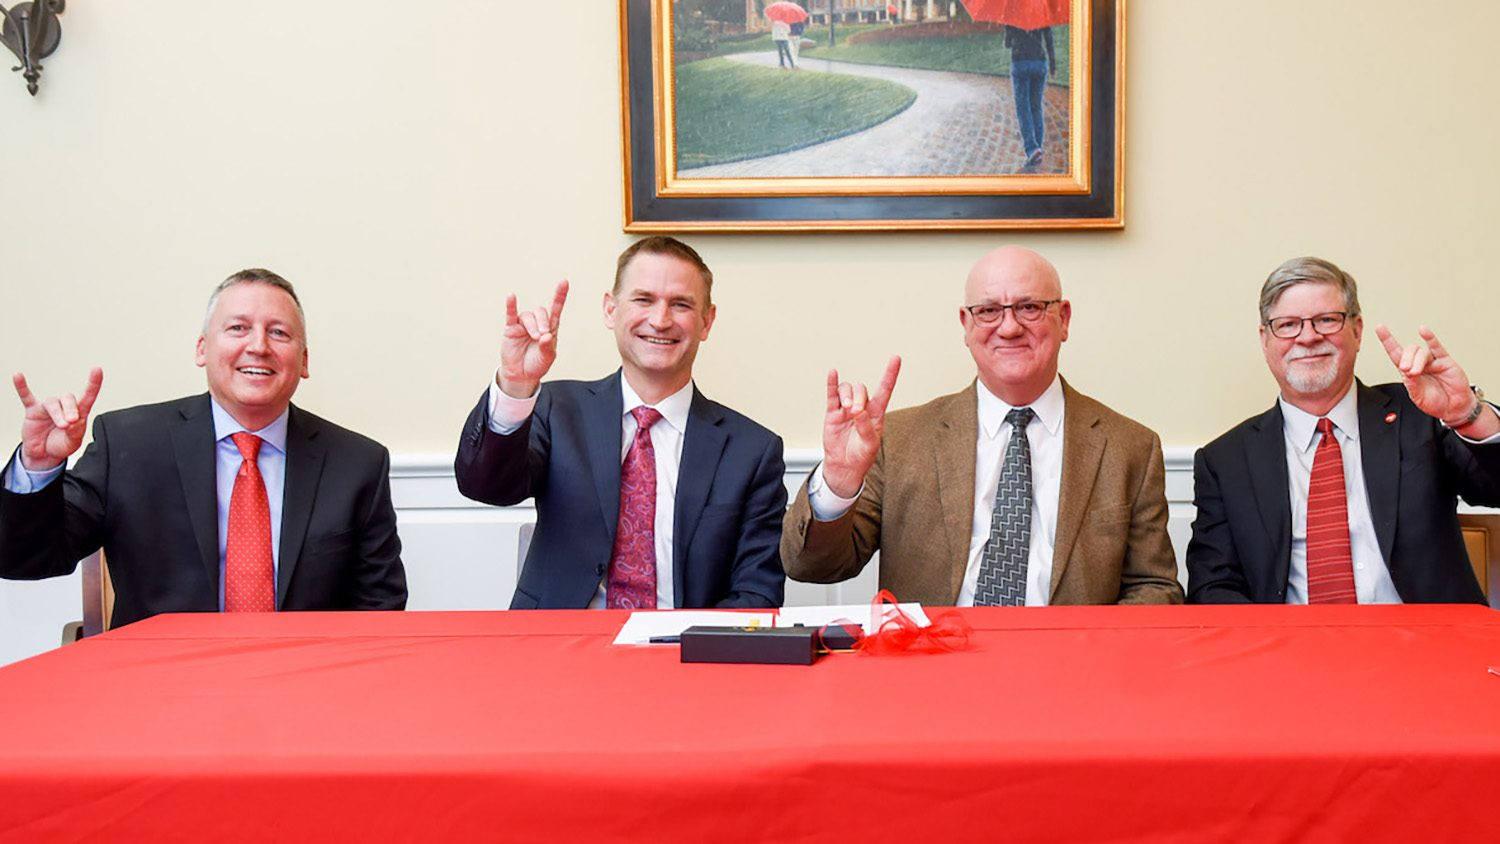 Four men at a red table give the wolf sign.